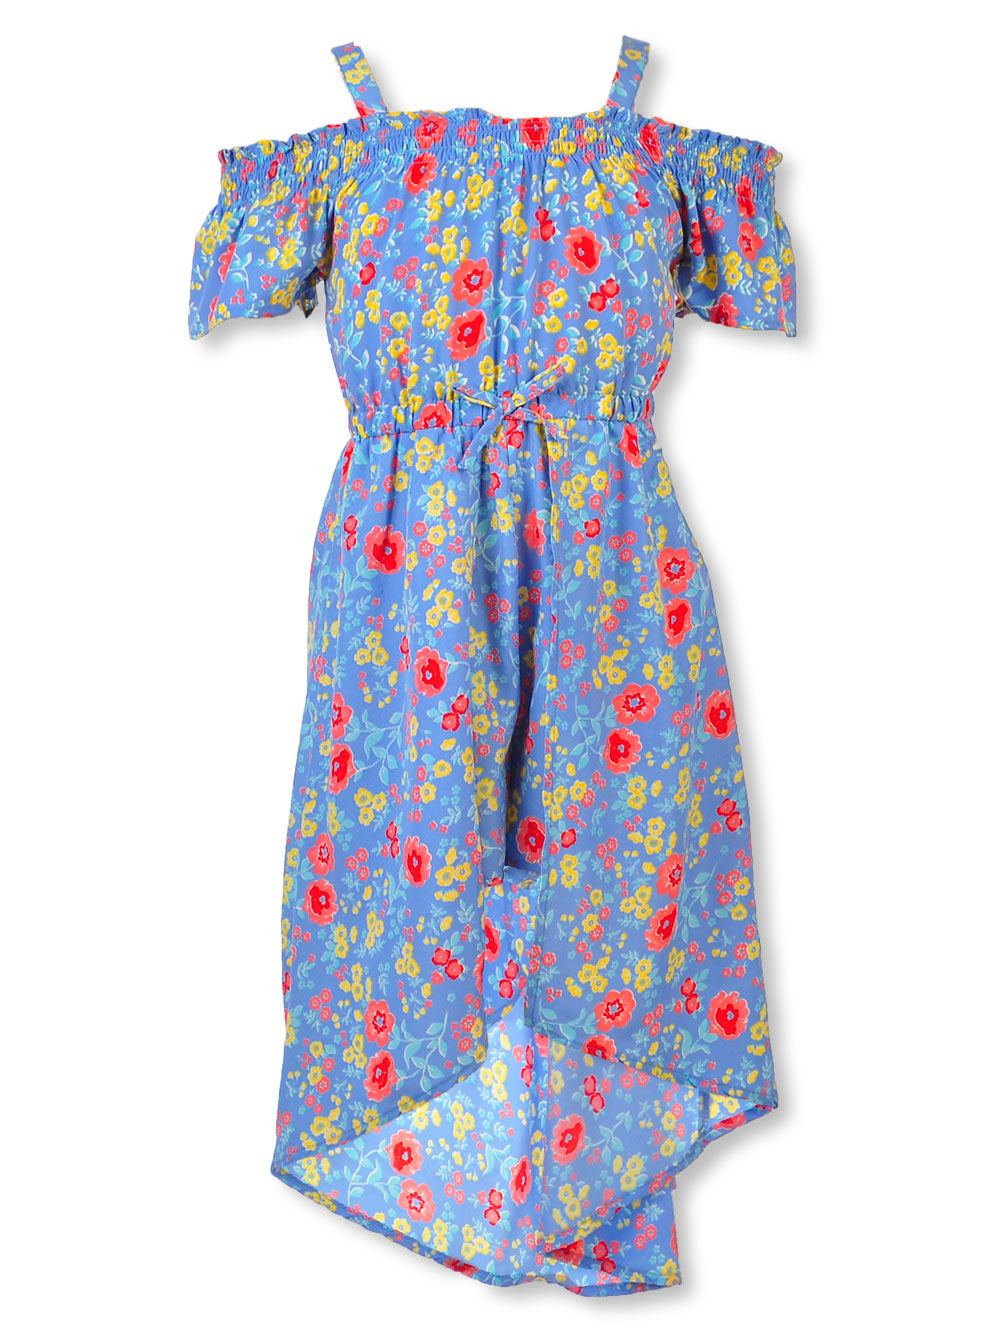 57653ed976a796 Girls' Cold Shoulder Walk-Thru Dress by Star Ride in blue/multi and peach  multi from Cookie's Kids